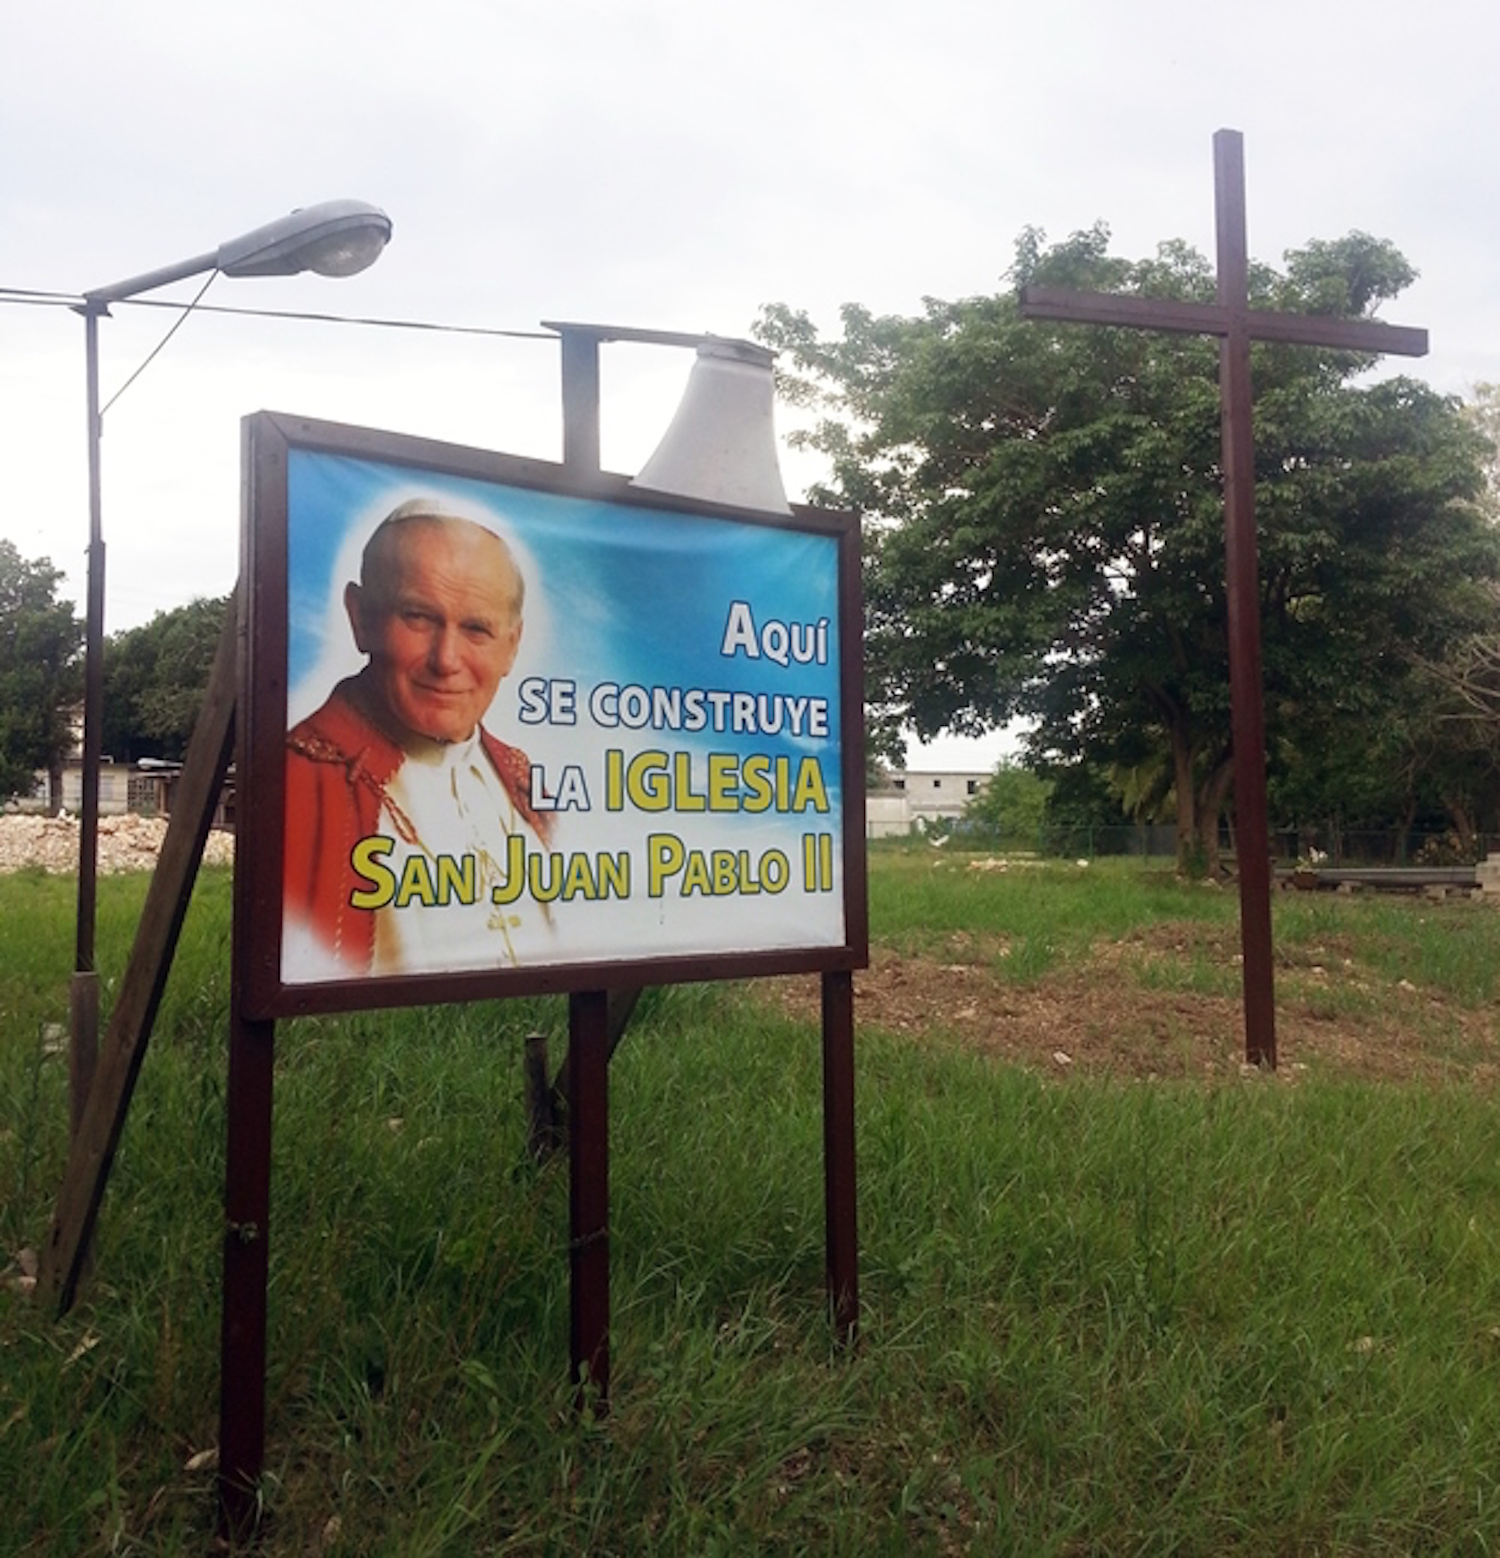 Bilboard at site of new church being built in Cuba